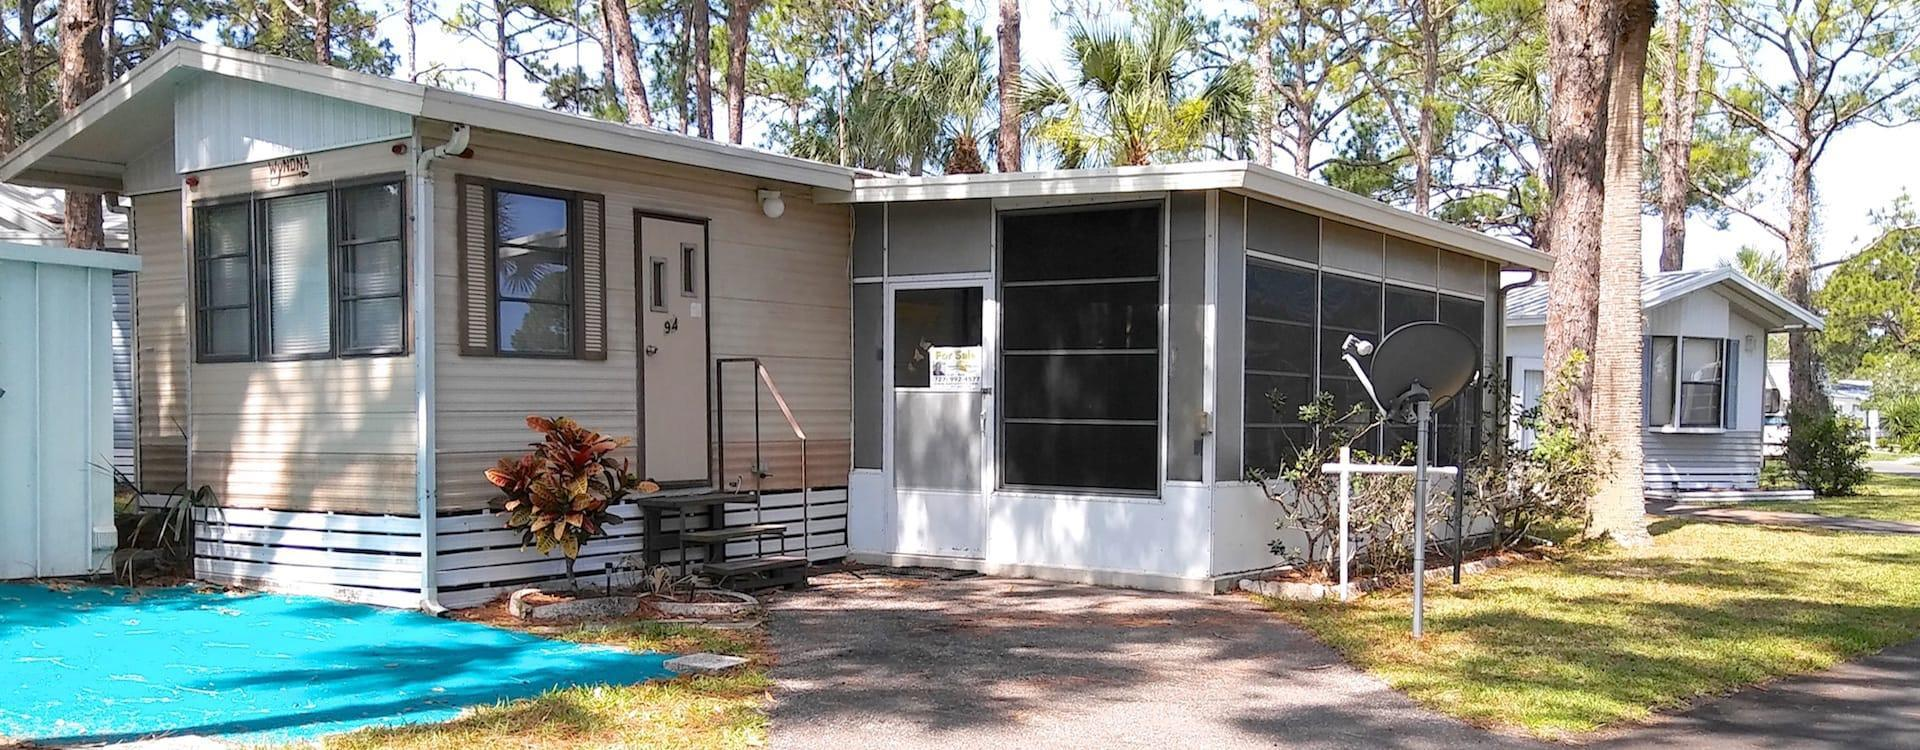 Mobile Home For Sale Port Richey Fl Oak Springs Rv